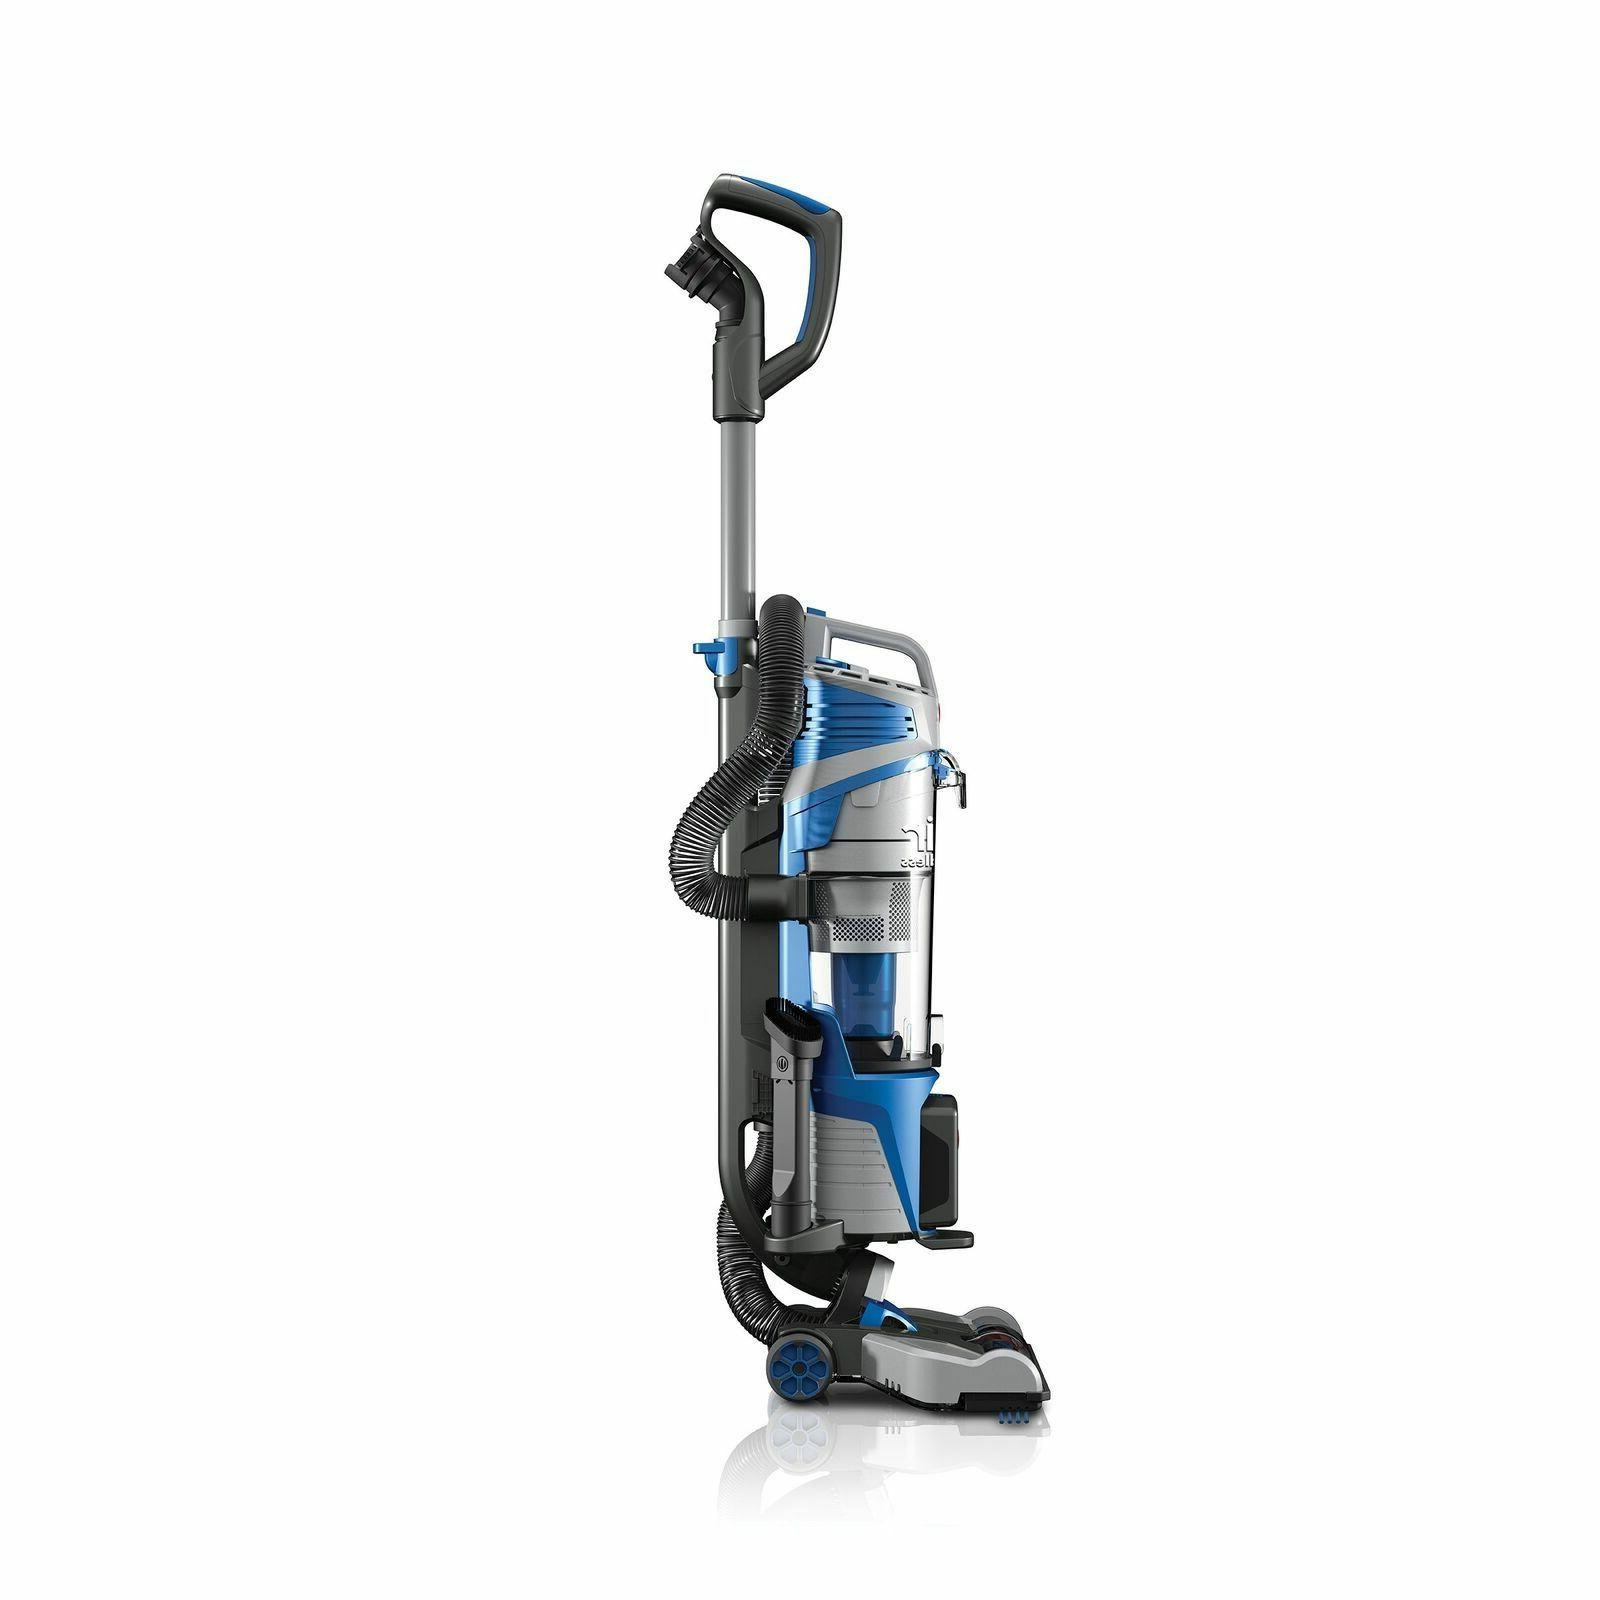 Hoover Lift 20 Ion Cordless Bagless